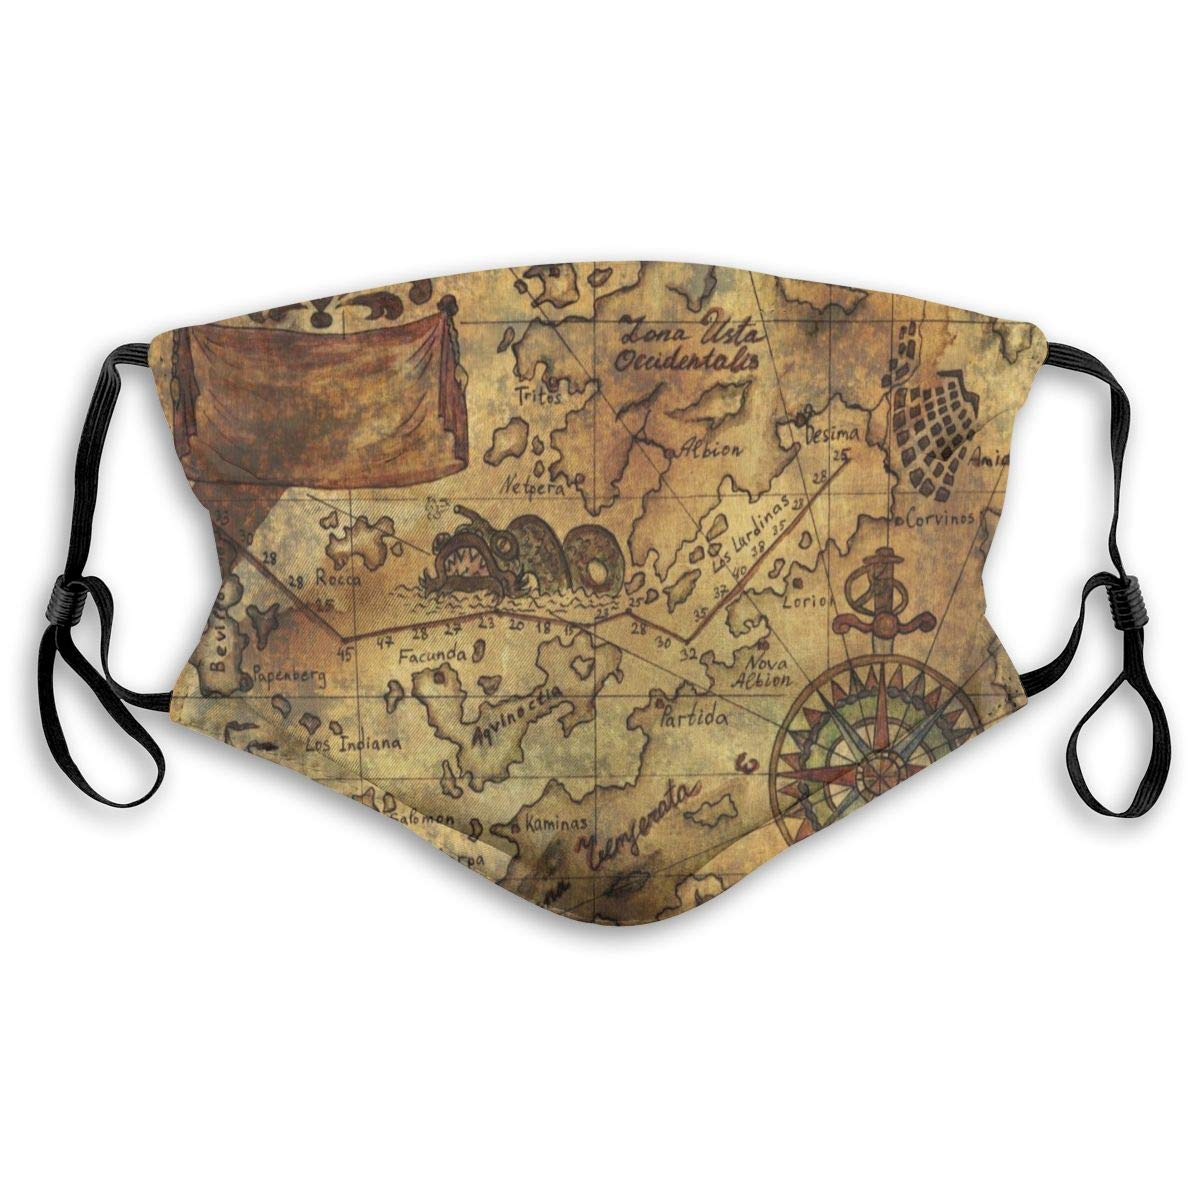 Antique Old World Map Face Masks With Replaceable Filter Mouth Mask Muffle Mask Breathable And Comfortable Mouth Cover Mask For